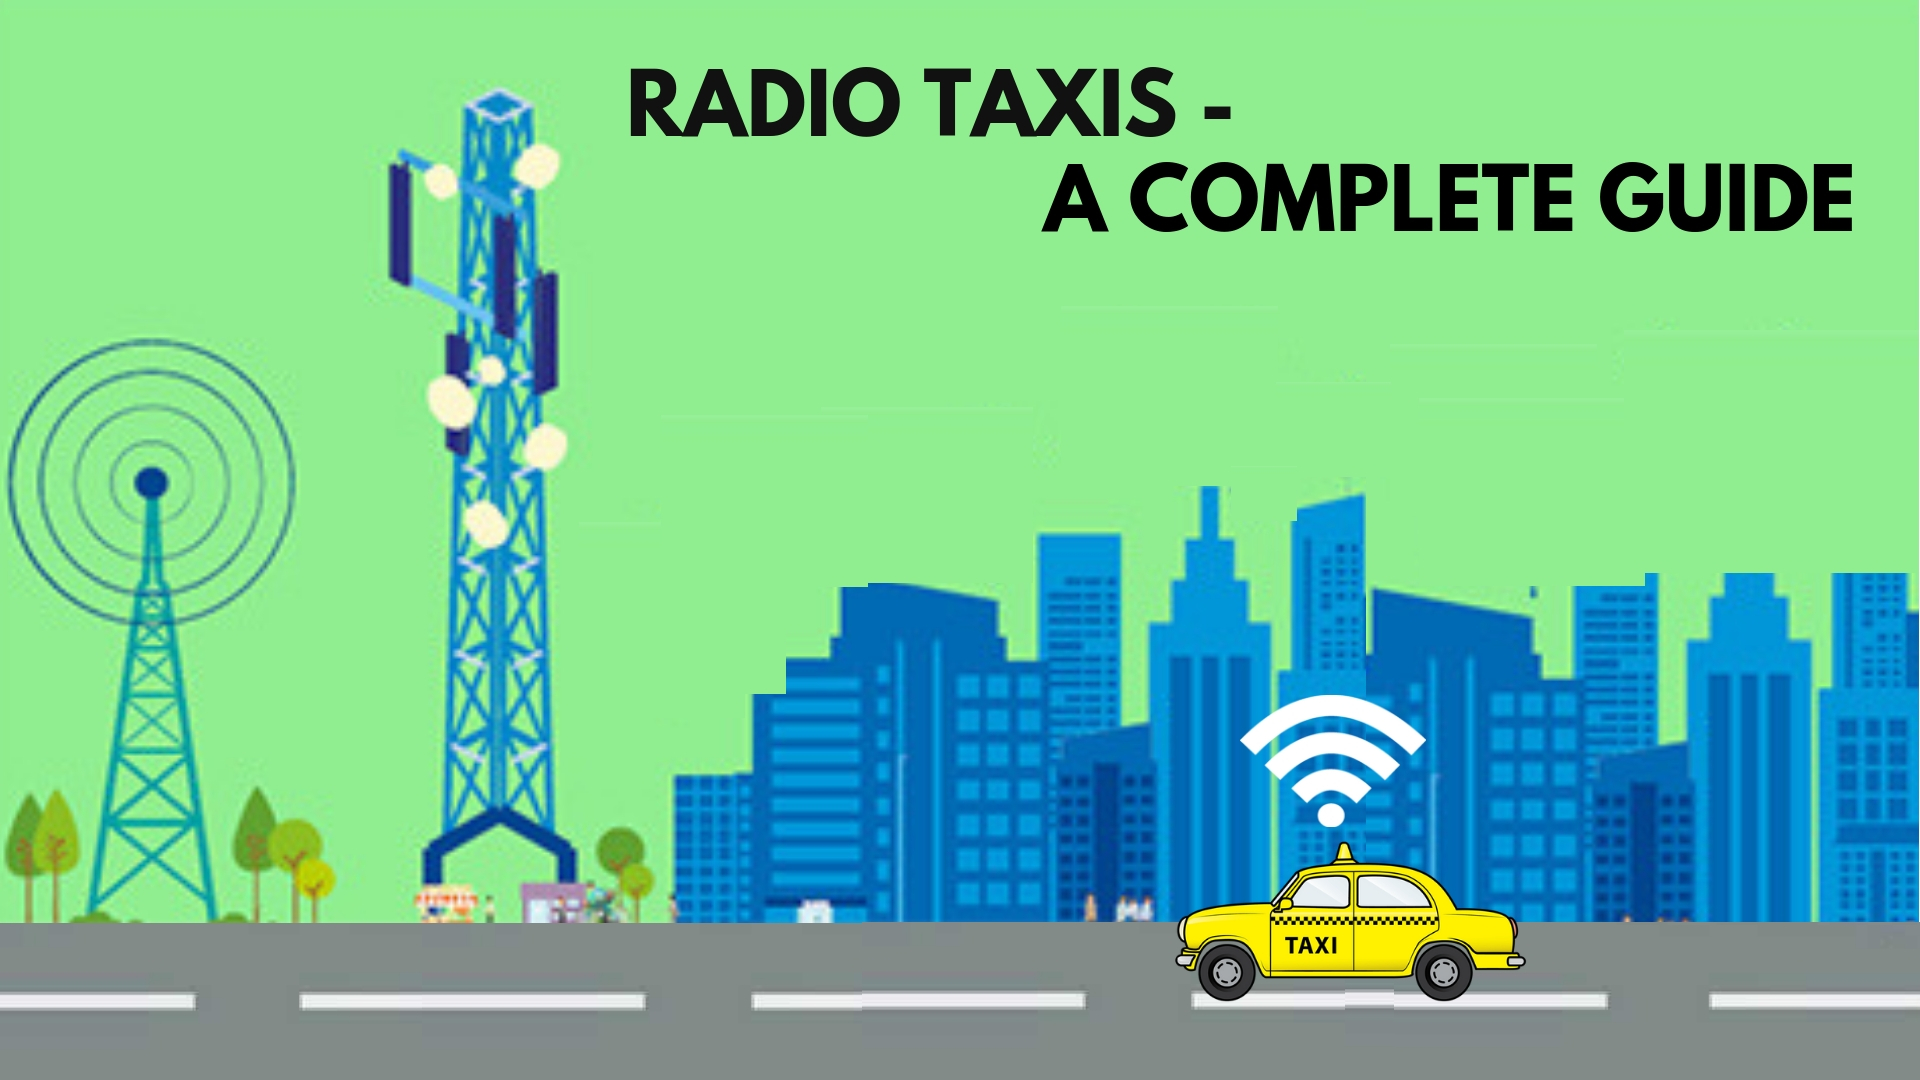 Radio Taxi infinite cab